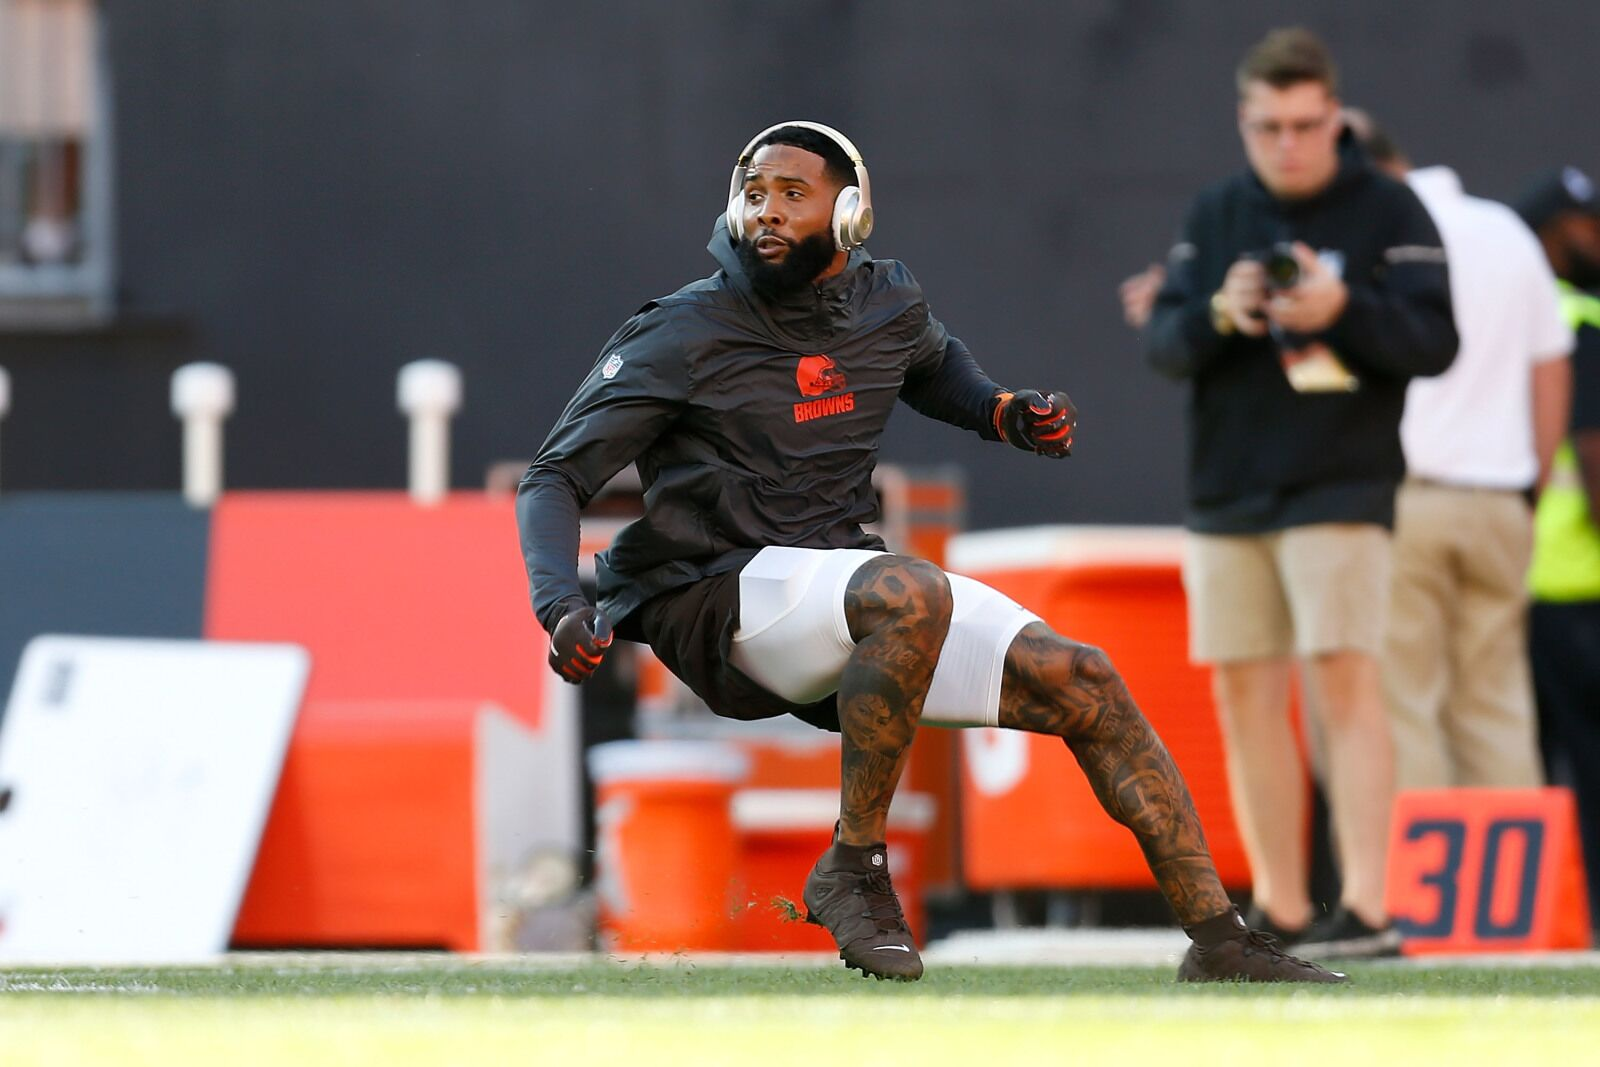 Cleveland Browns: Week 1 score predictions vs. Tennessee Titans